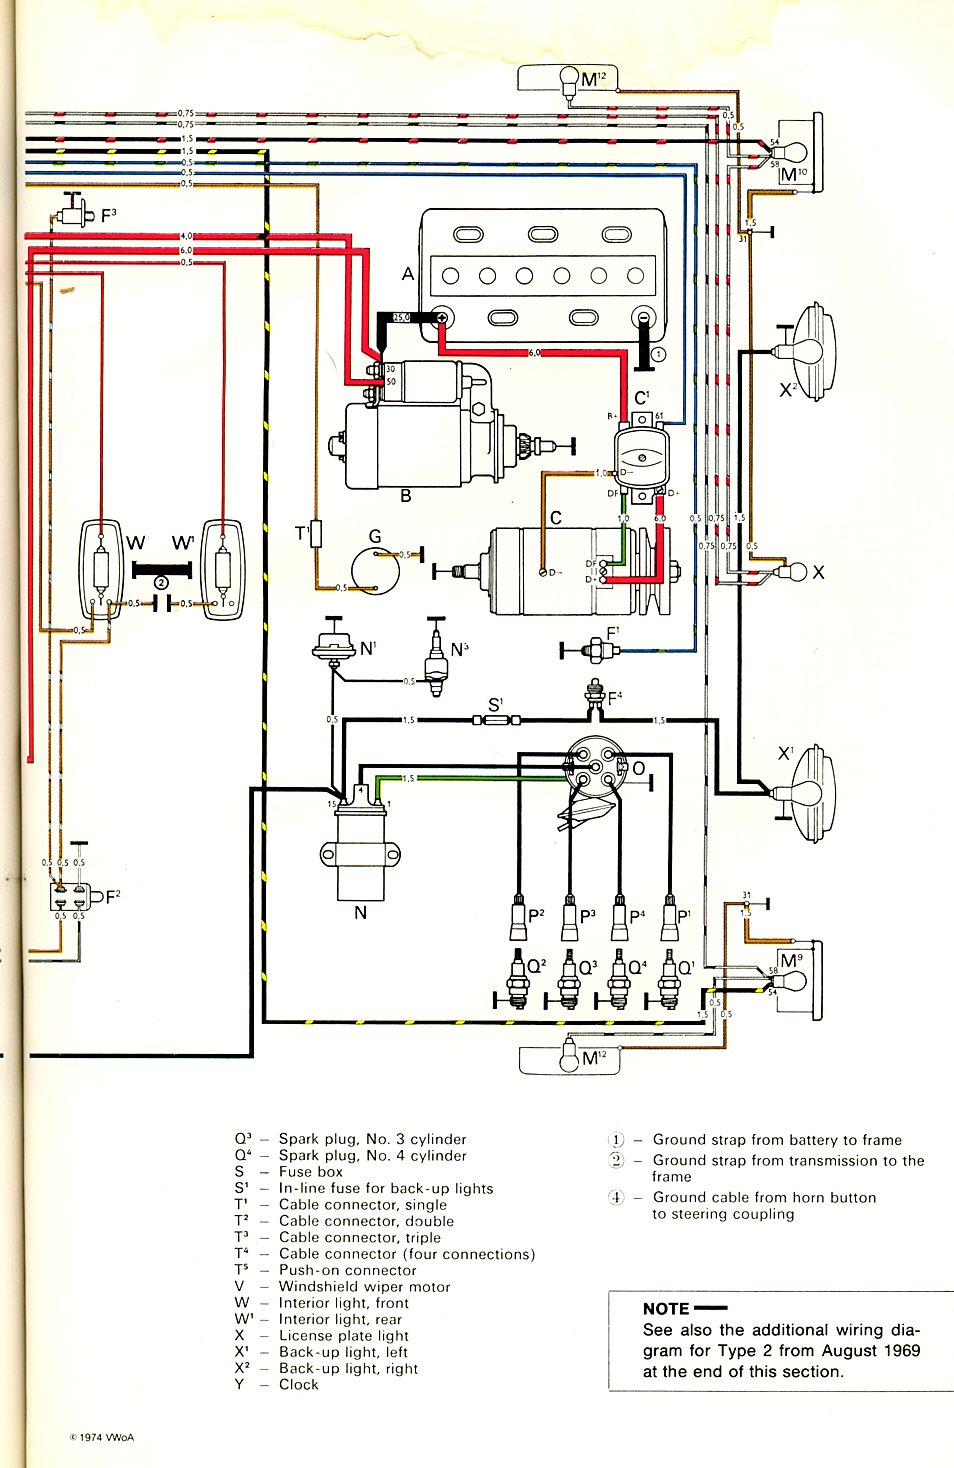 baybus_70b thesamba com type 2 wiring diagrams vw wiring diagrams at cita.asia